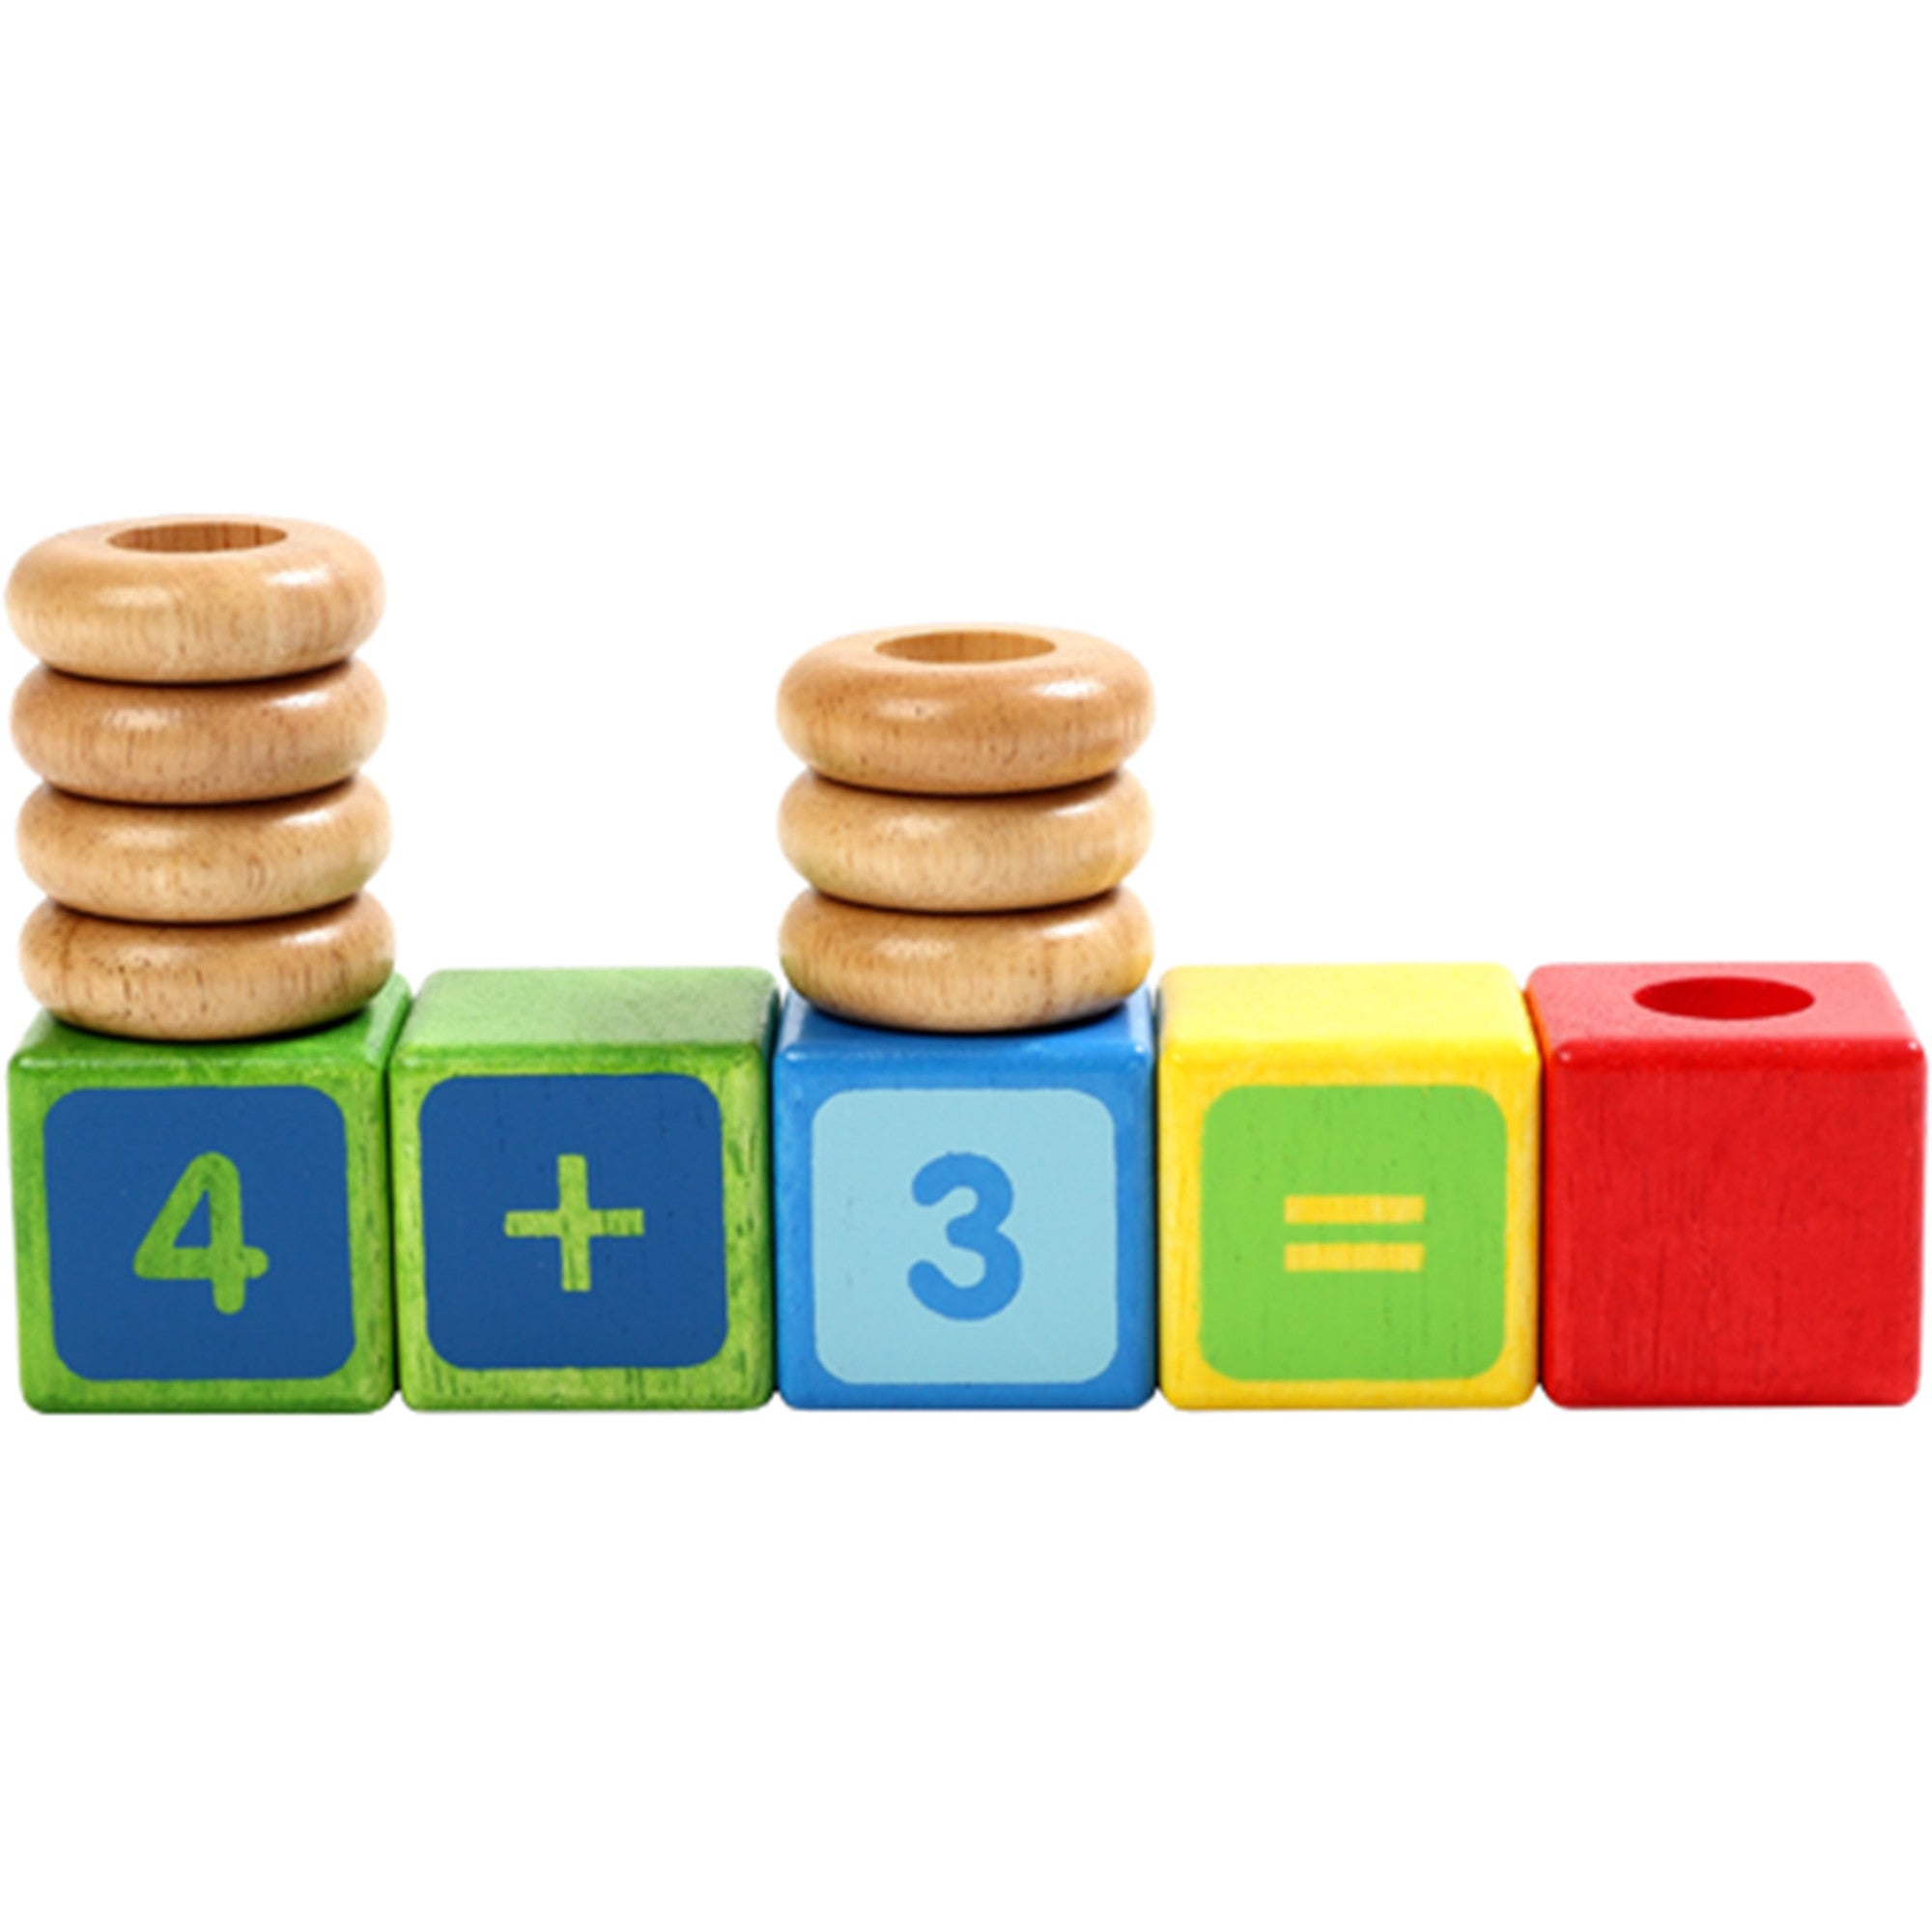 Voila Stacking Numbers Set Voila Activity Toys at Little Earth Nest Eco Shop